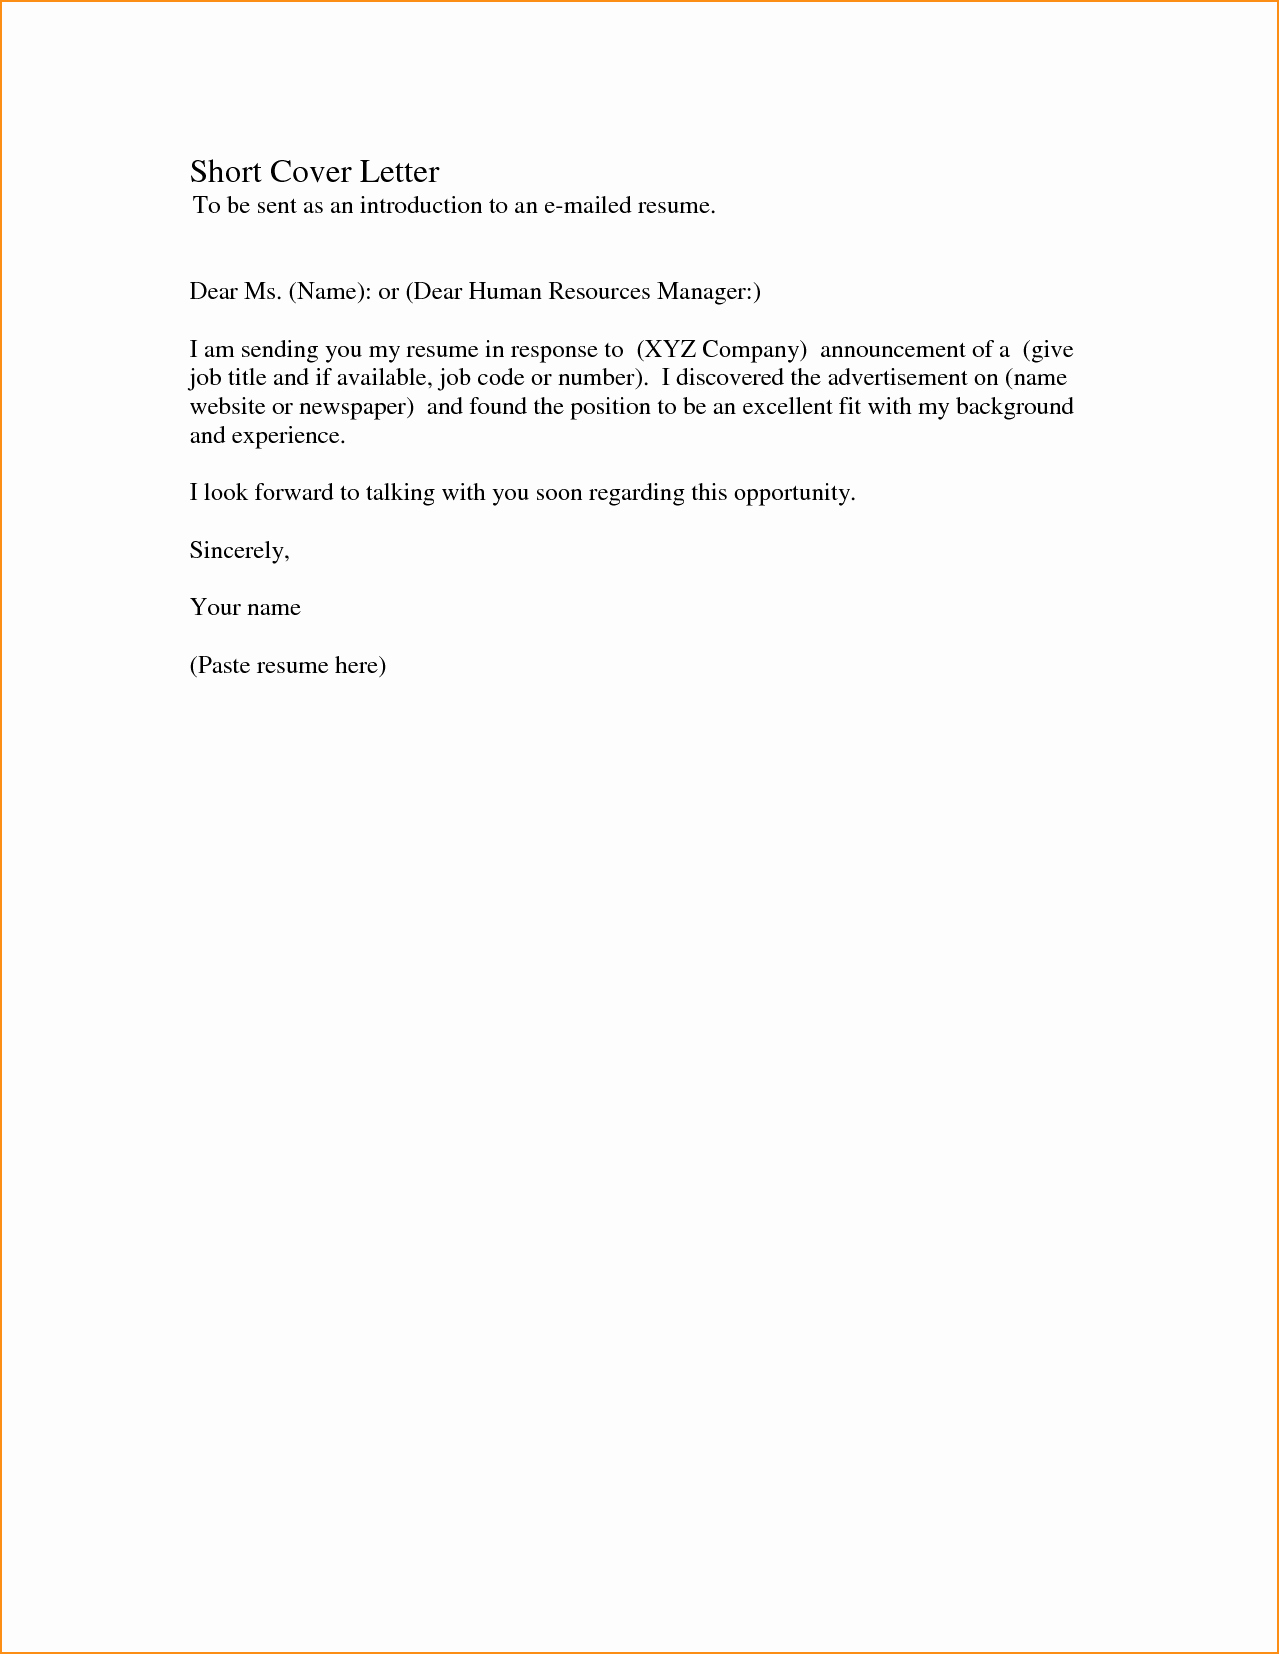 Cover Letter for Office Work Fresh Short Cover Letter for A Job Application